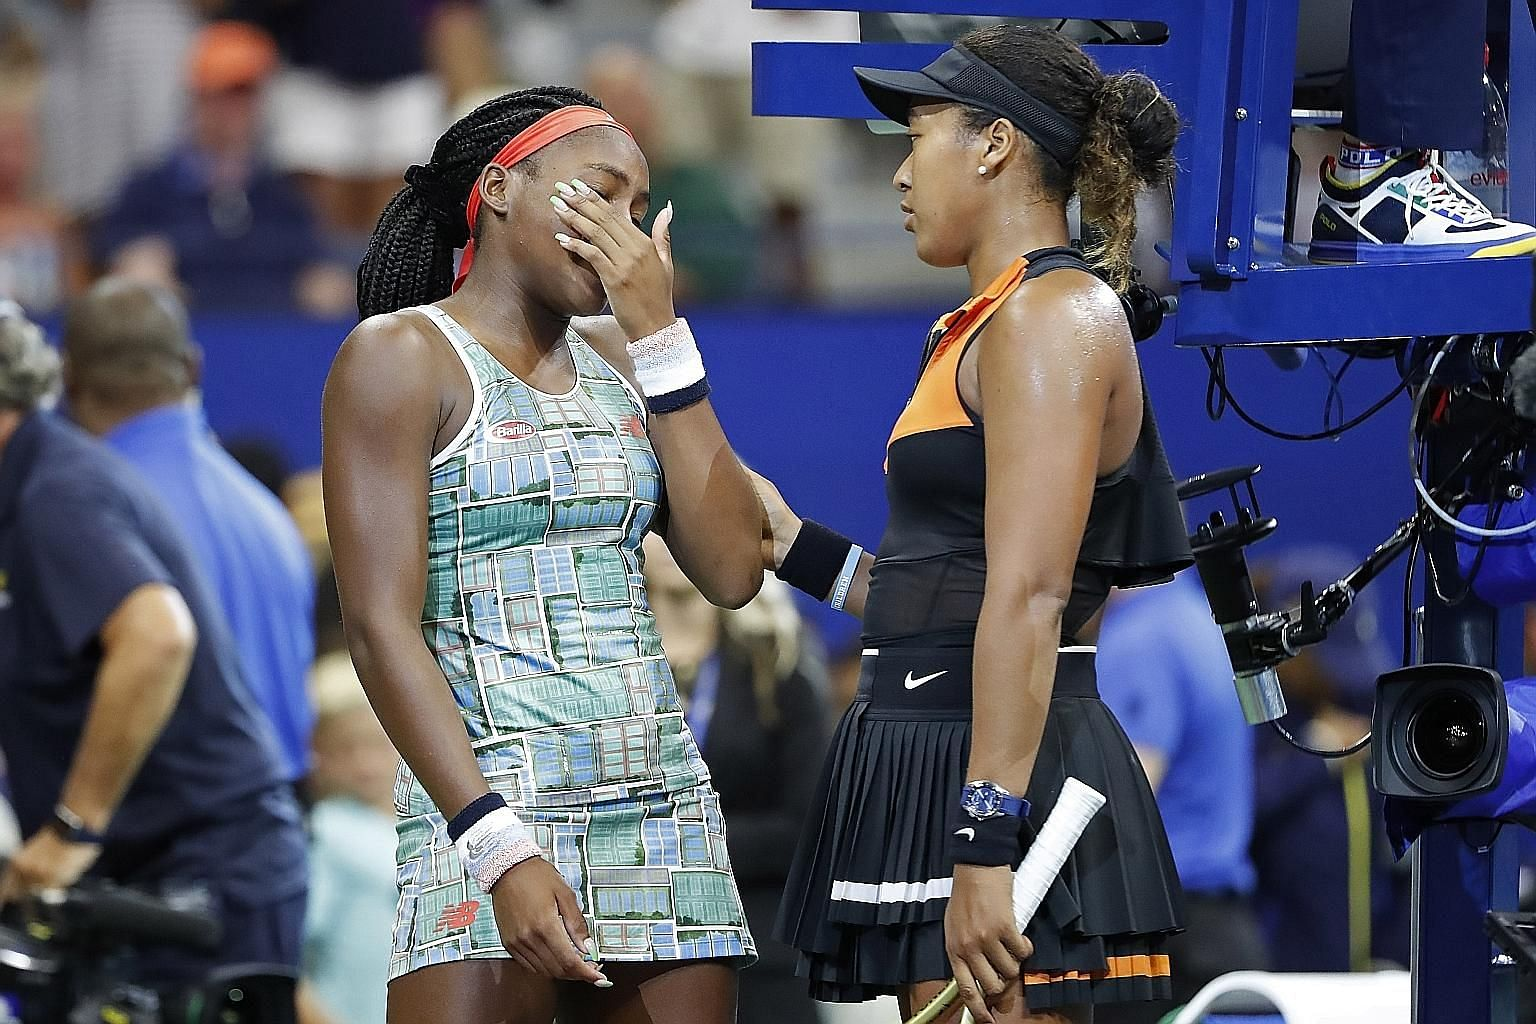 Naomi Osaka displaying the magnanimity of a champion in comforting teen sensation Cori Gauff after their match on Saturday. PHOTO: REUTERS